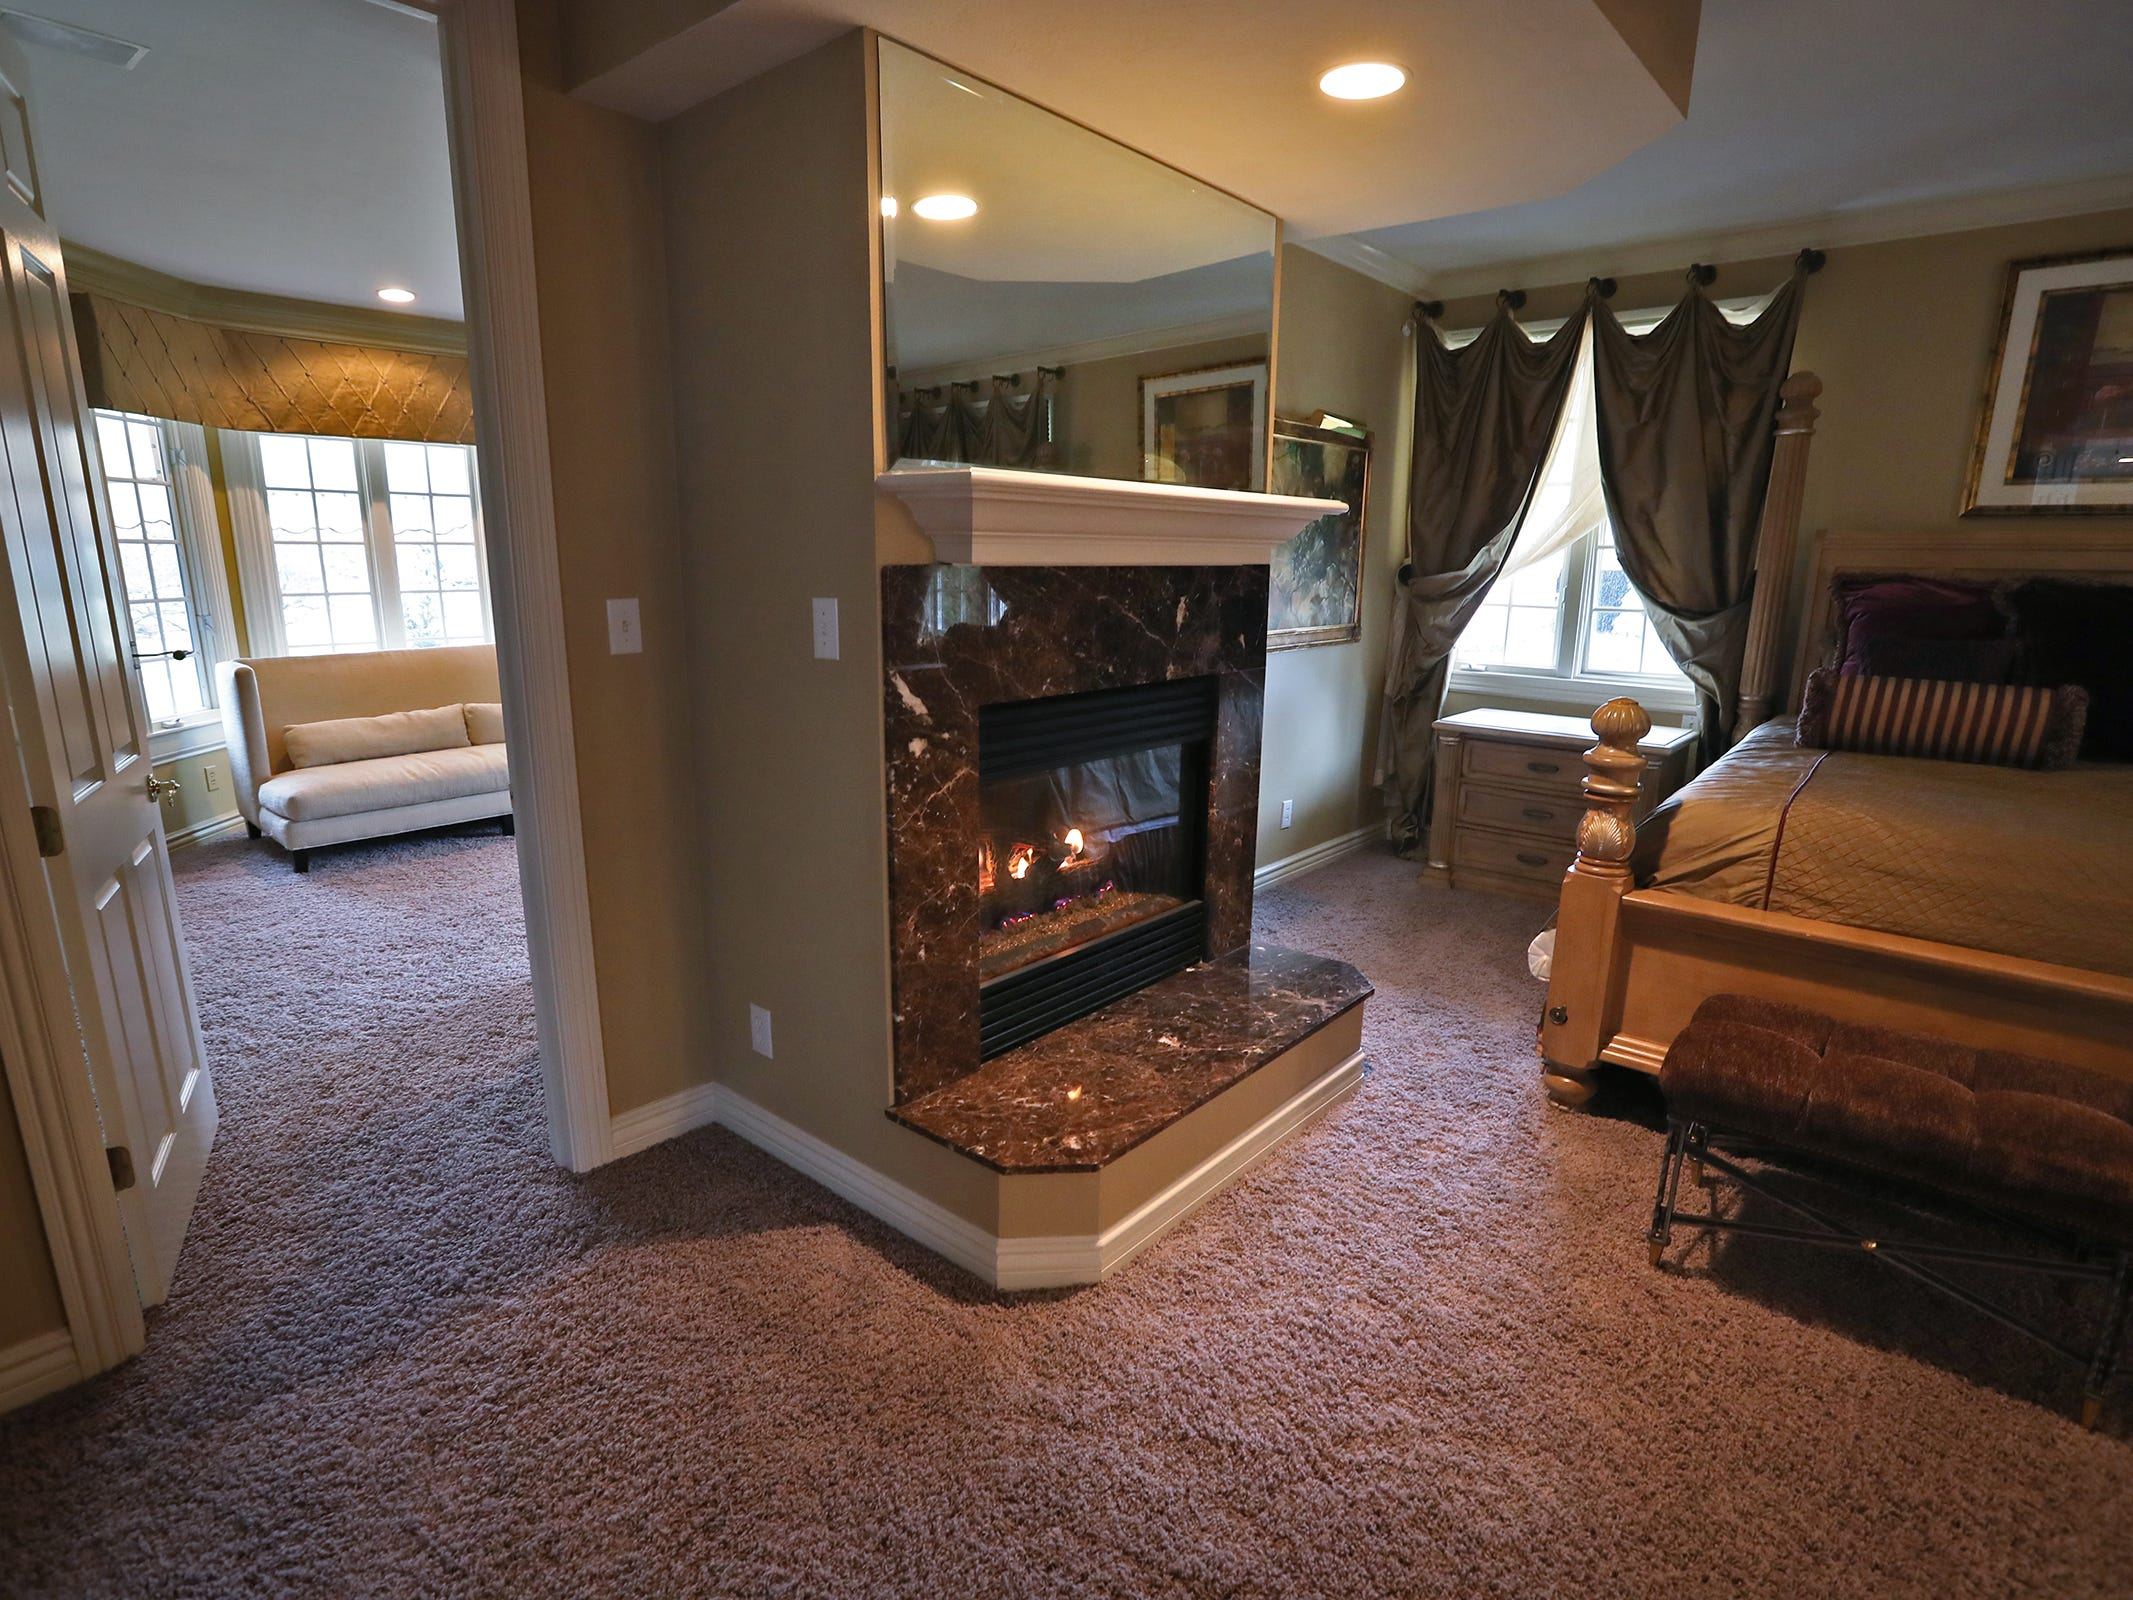 This is the master bedroom in the home at 1270 Laurelwood Ct. in Carmel, Friday, Dec. 28, 2018.  It includes a sitting room, left, and a two-sided fireplace.